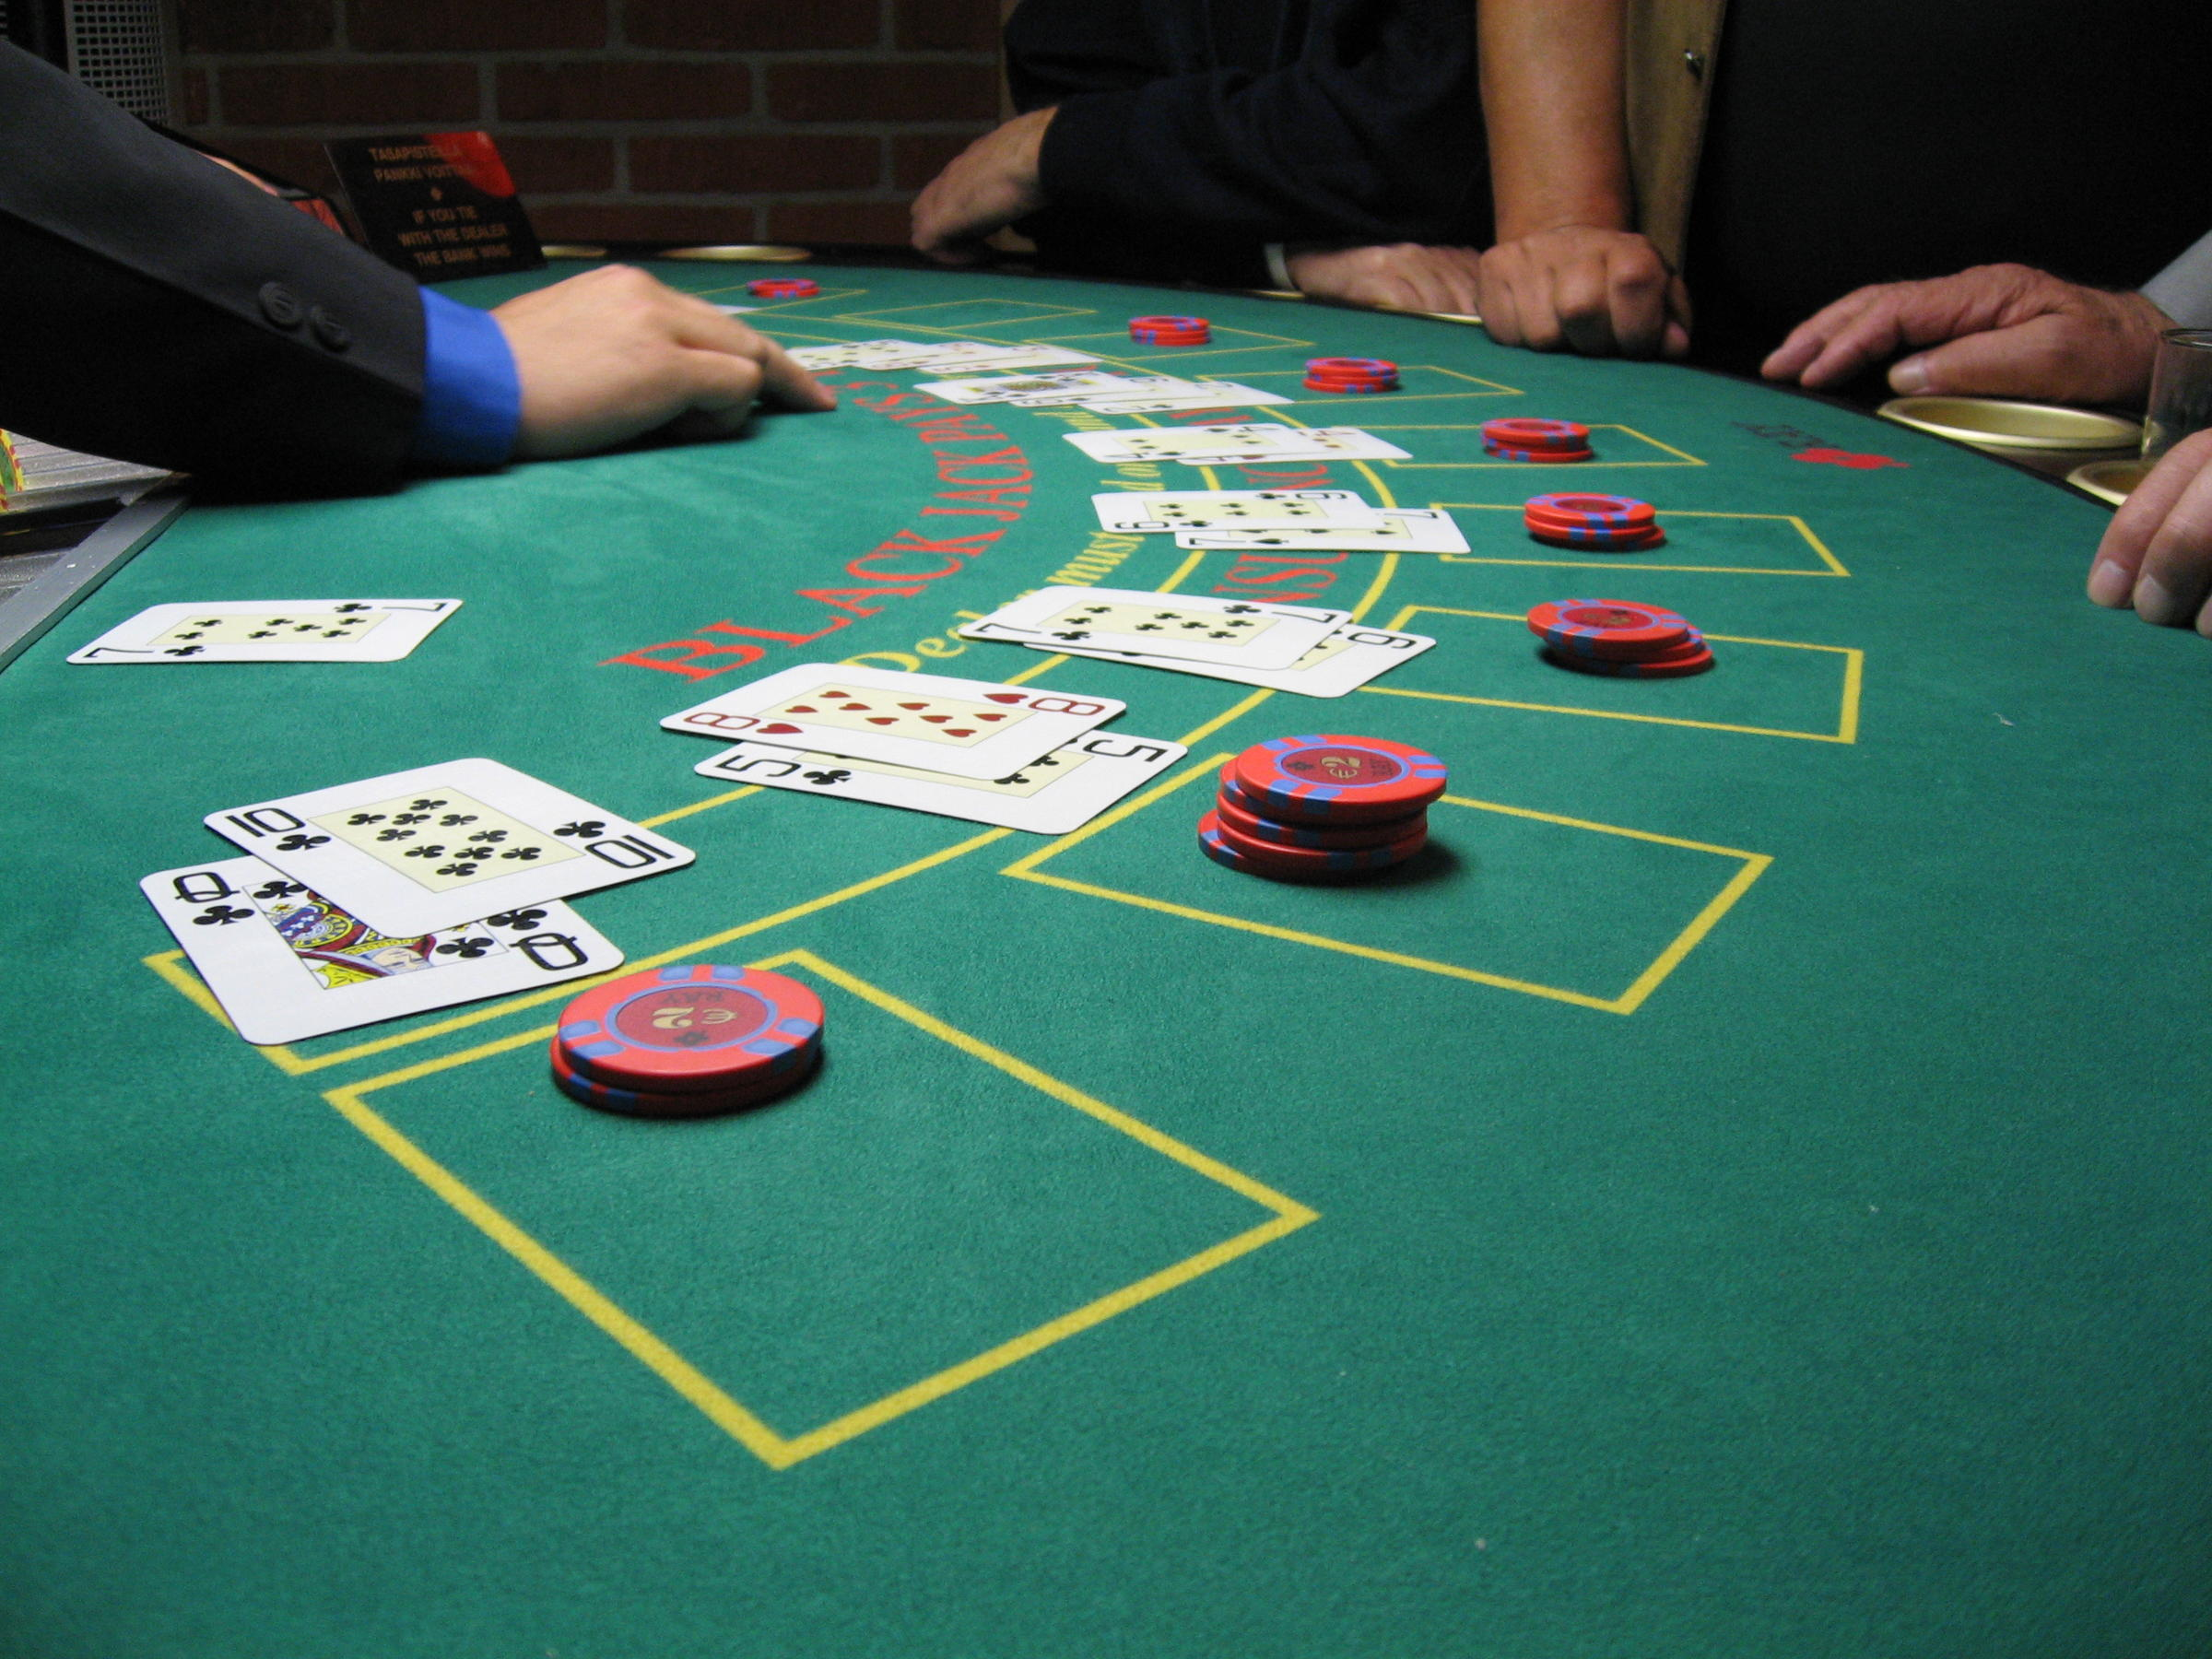 Opponents of gambling black casino casino craps gambling guide jack poker roulette winner